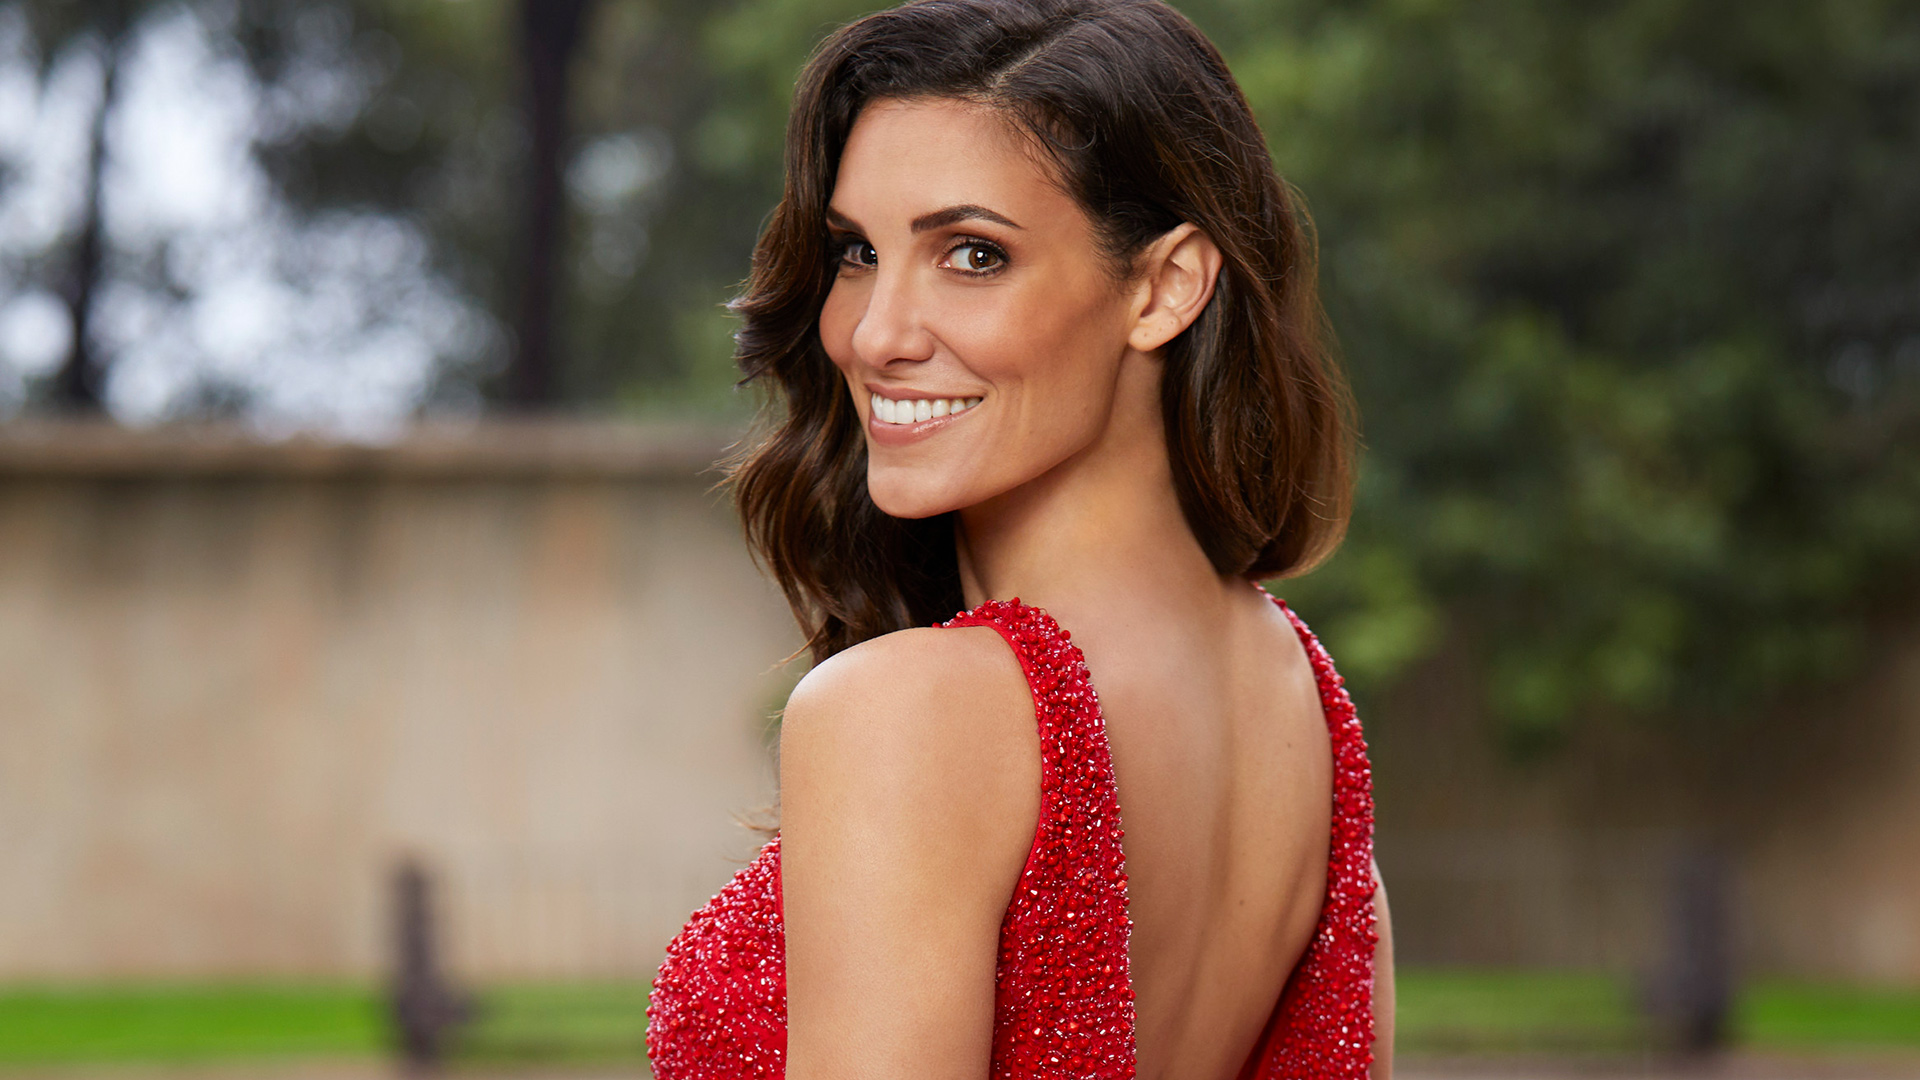 NCIS: Los Angeles star Daniela Ruah stuns in every single one of these photographs